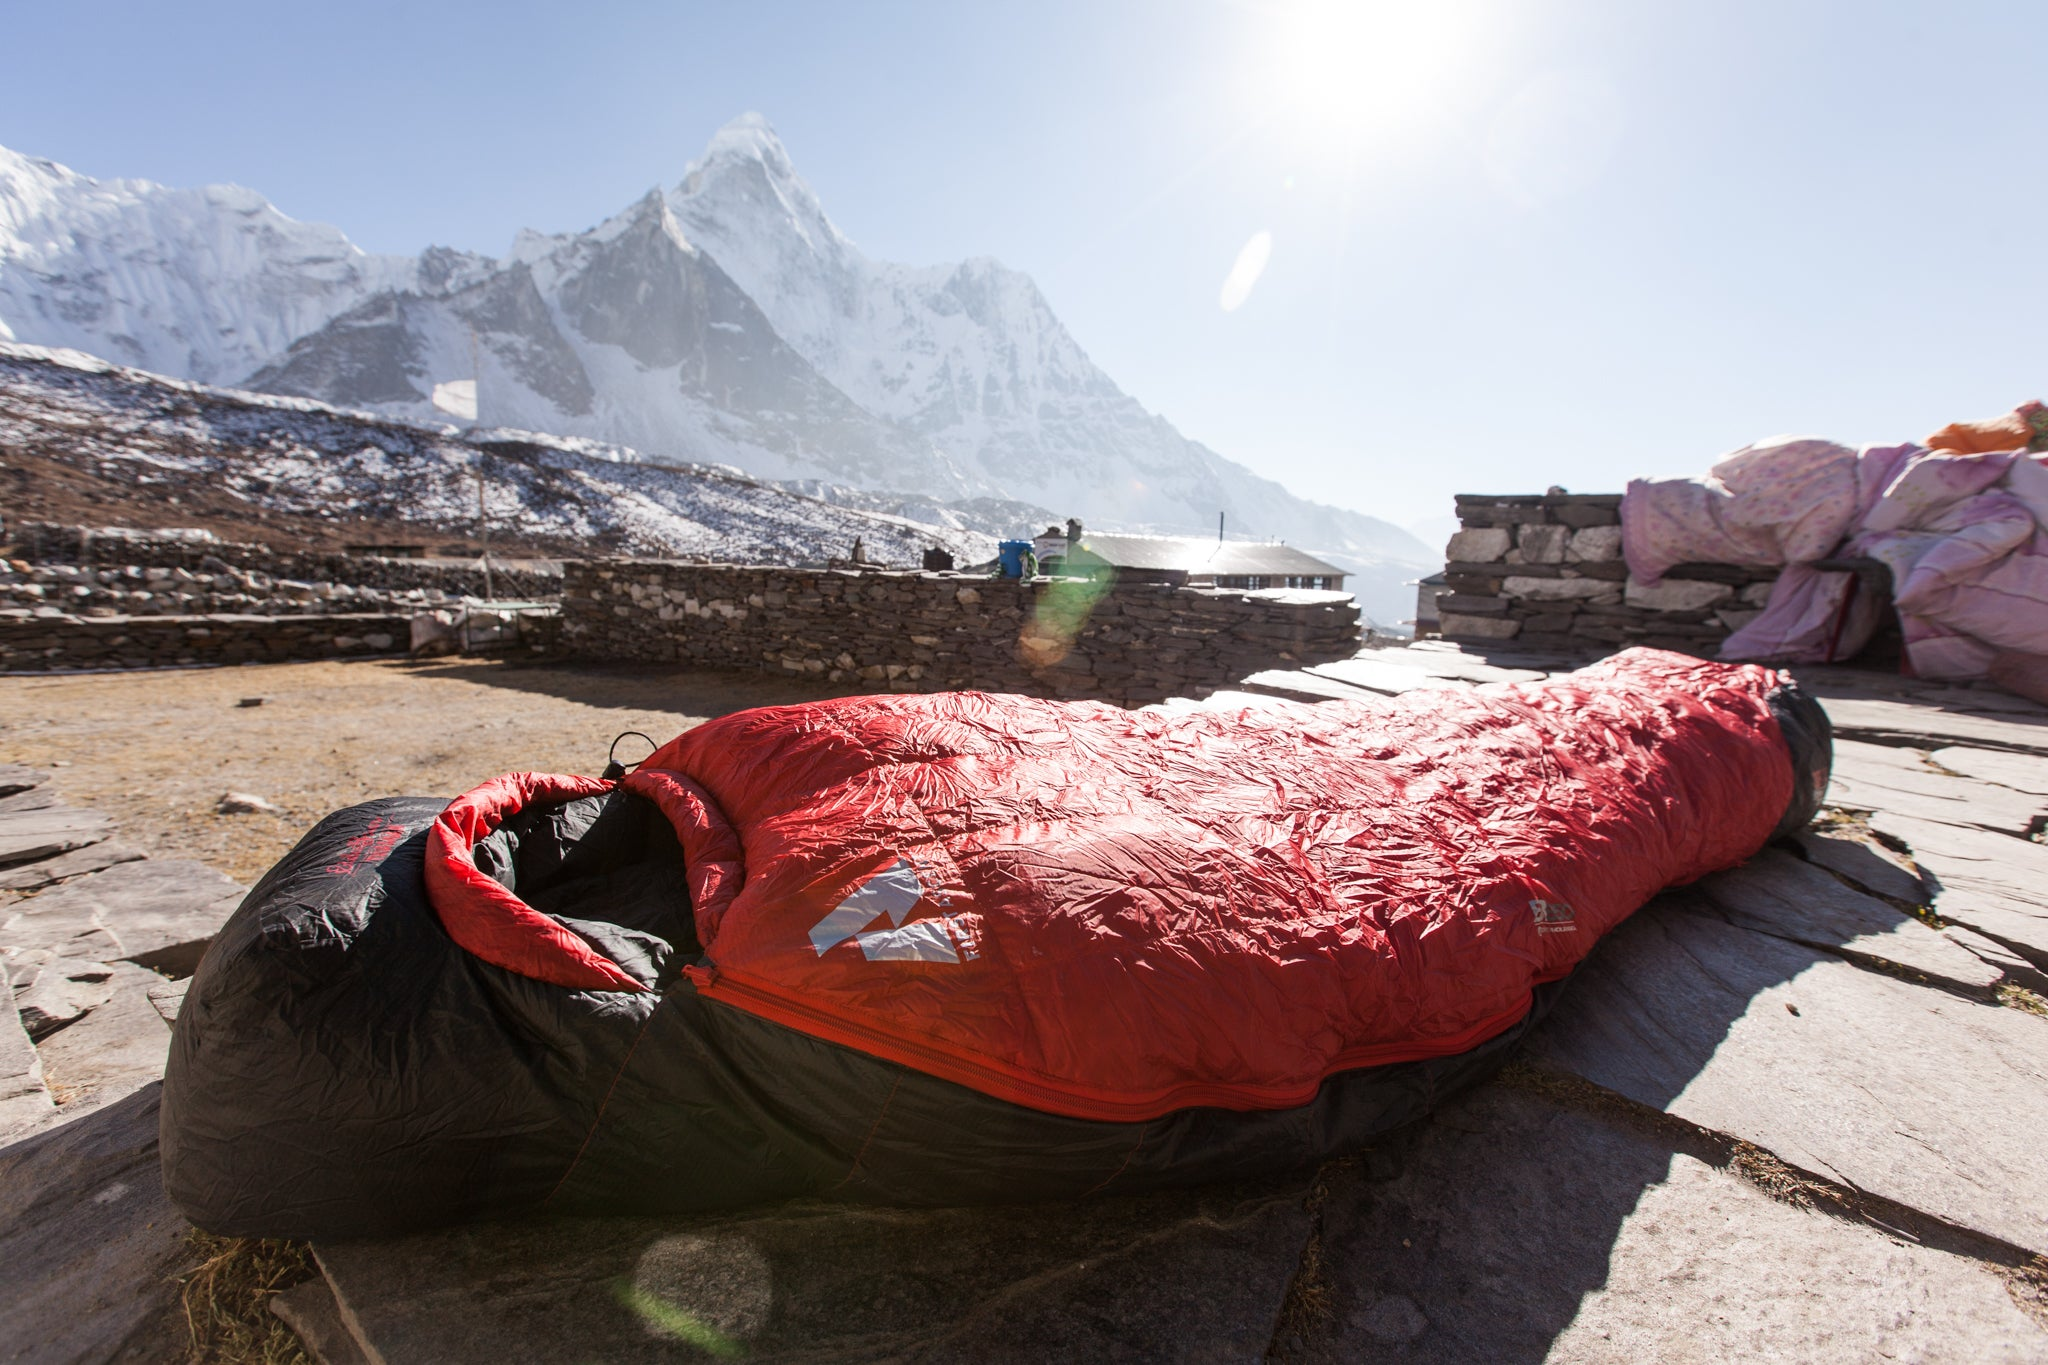 What It Feels Like To Crawl Into A -30F Sleeping Bag In The Himalaya